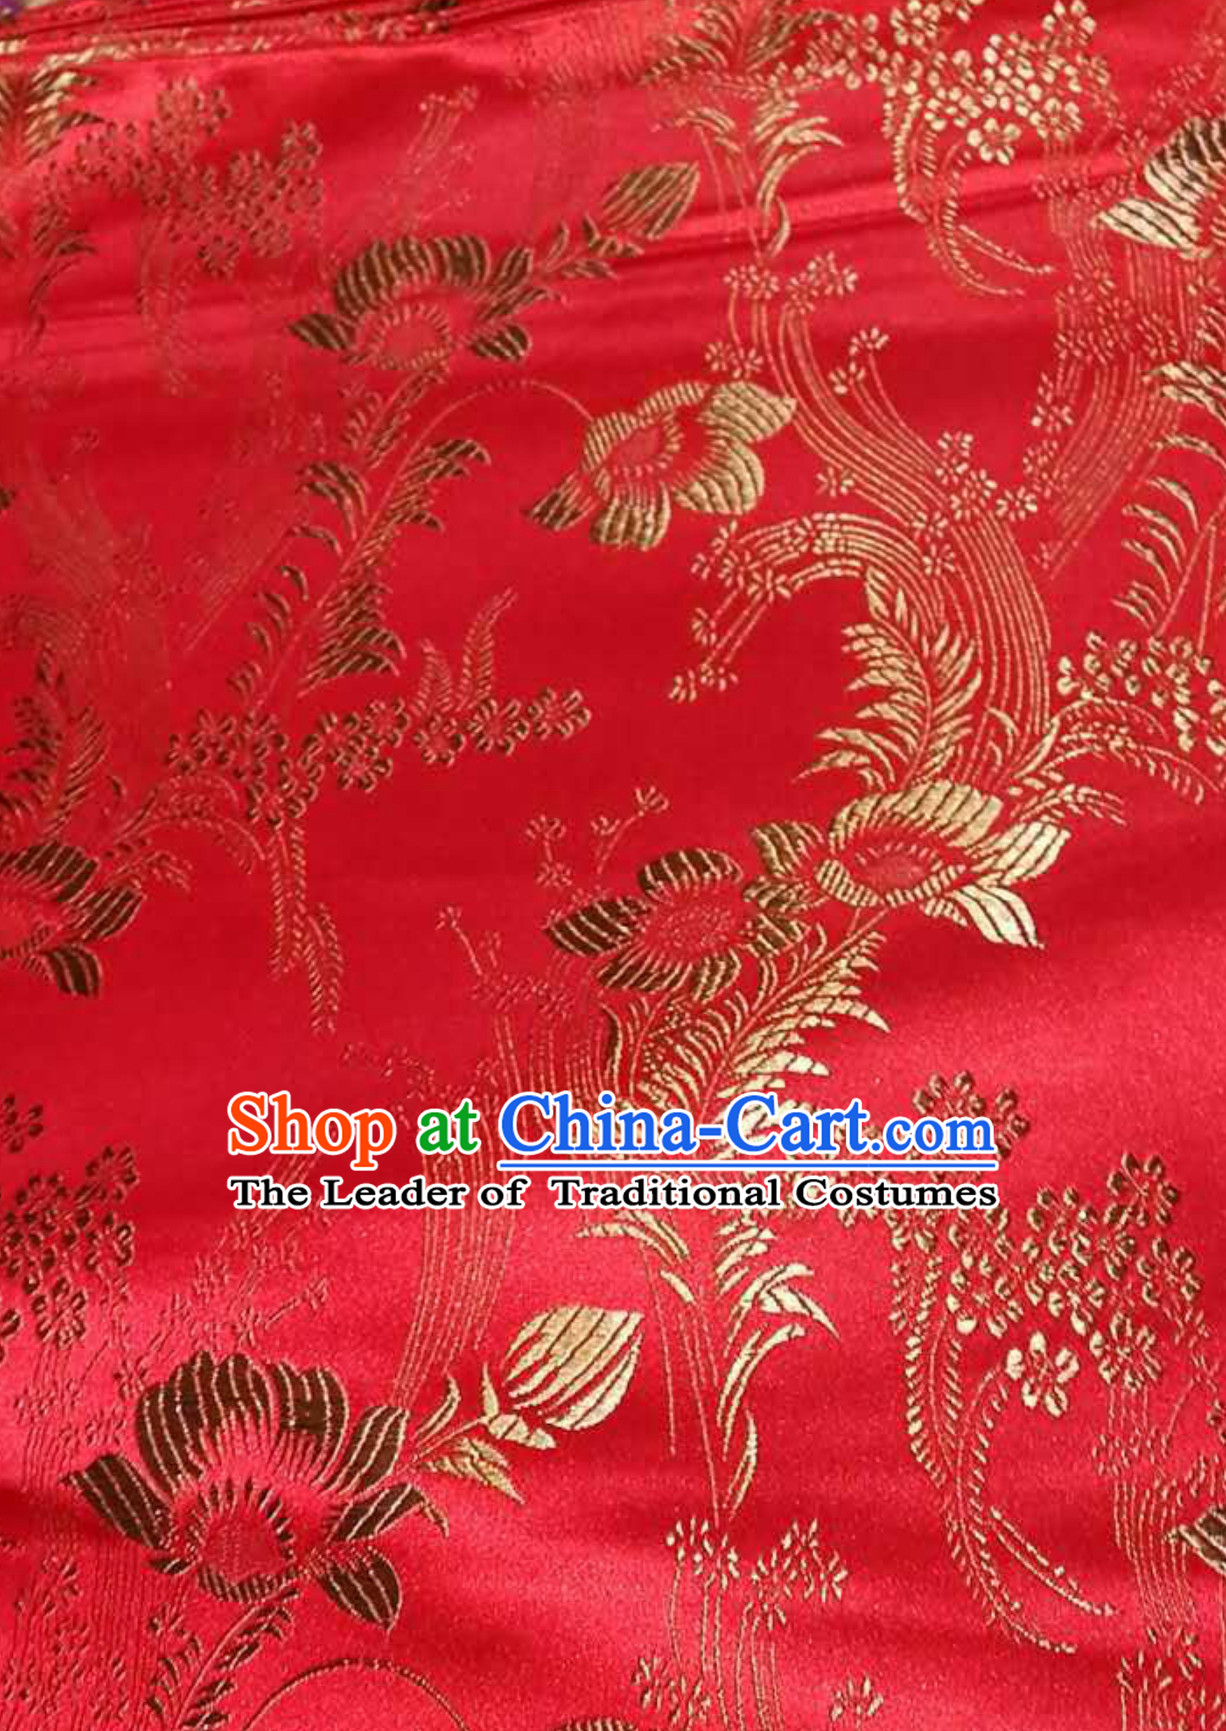 35\u201cwidth 4 colors  chinese retro tranditional  little red flower tapestry satin  brocade  fabric for clothes doll stage  by yard